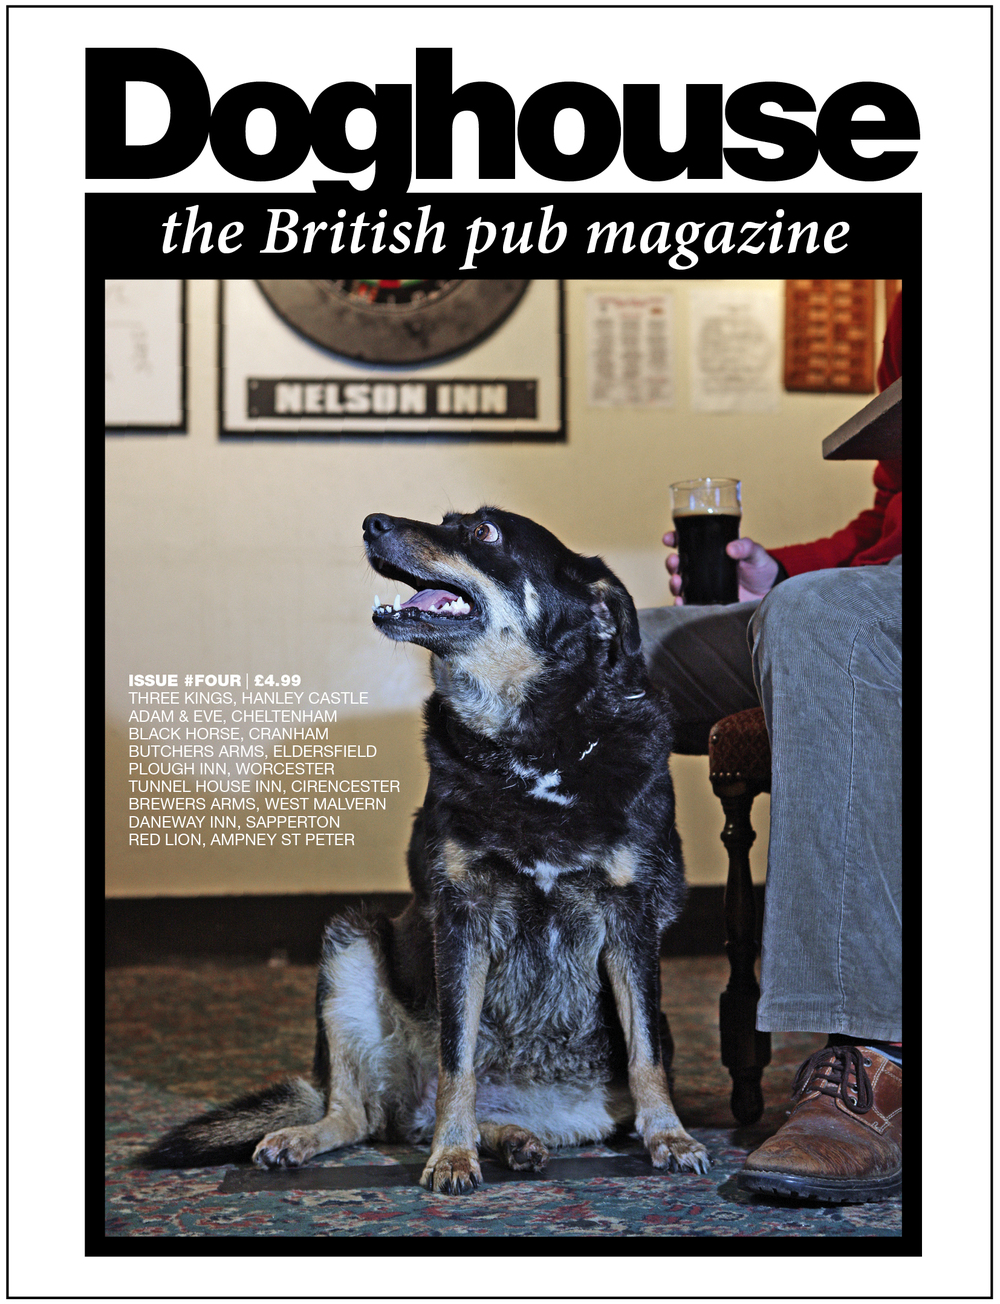 Doghouse-edition4_coverlines.jpg